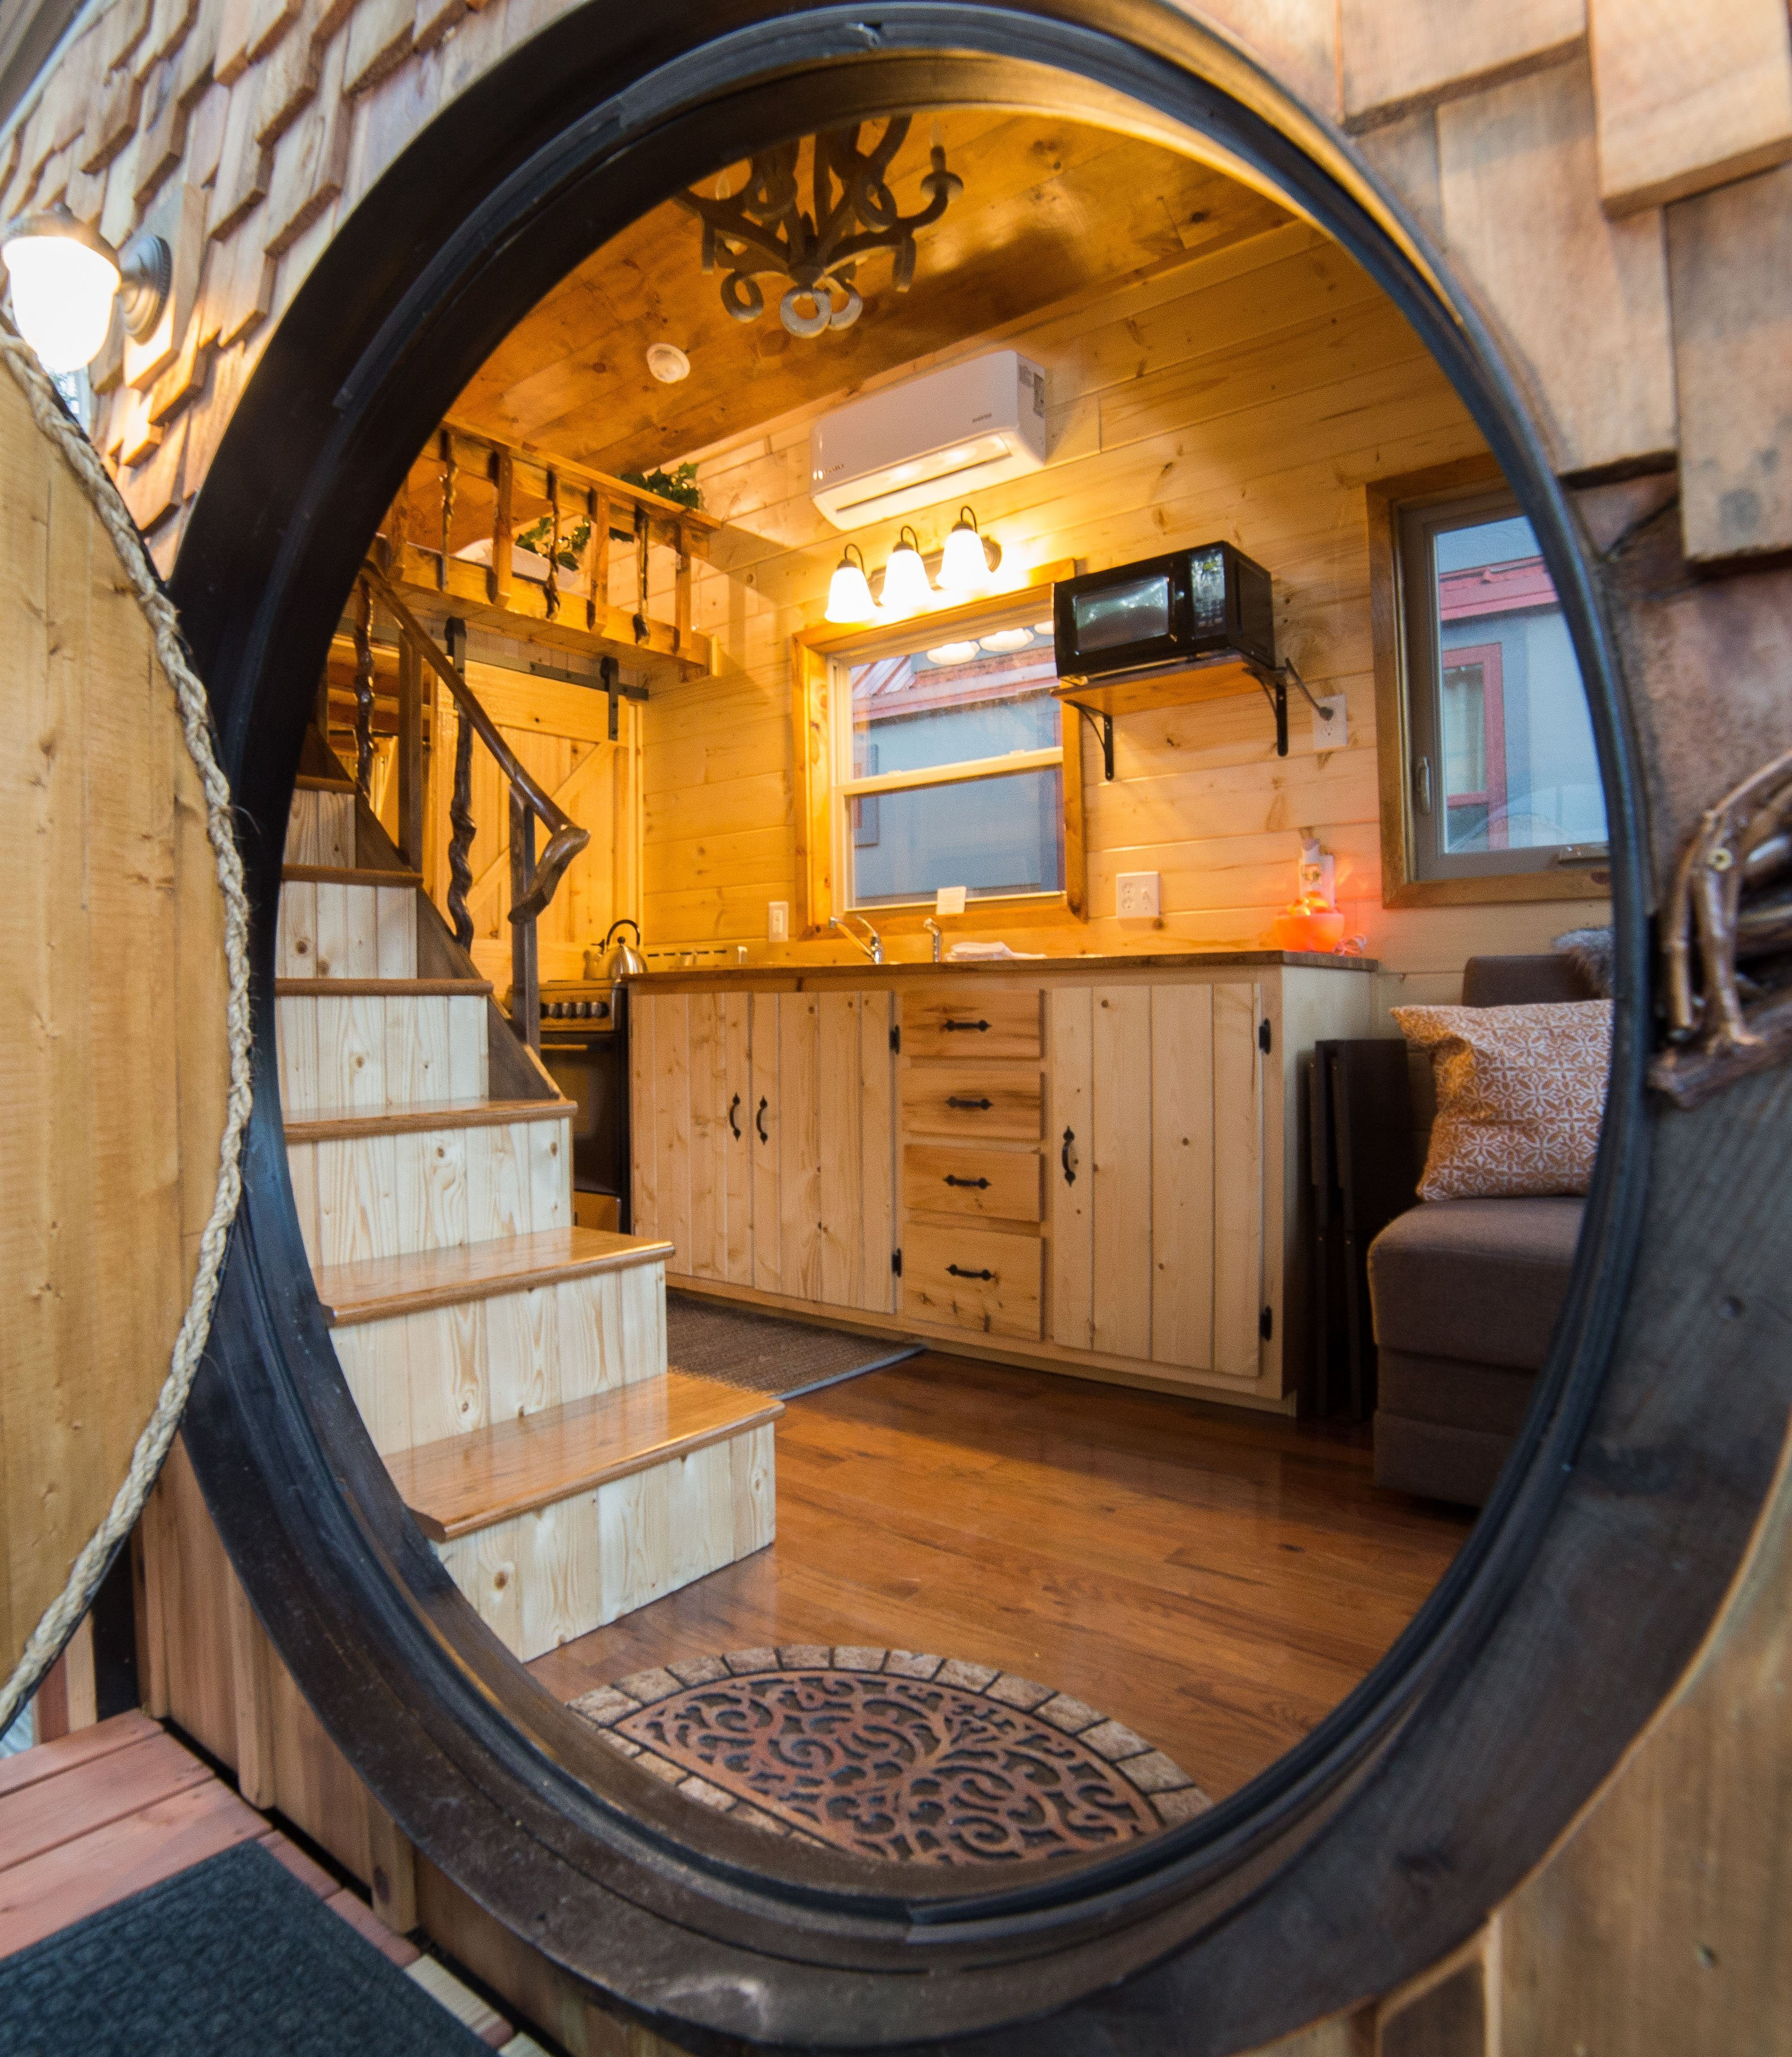 15 Must-See Micro-Hotels Around the World